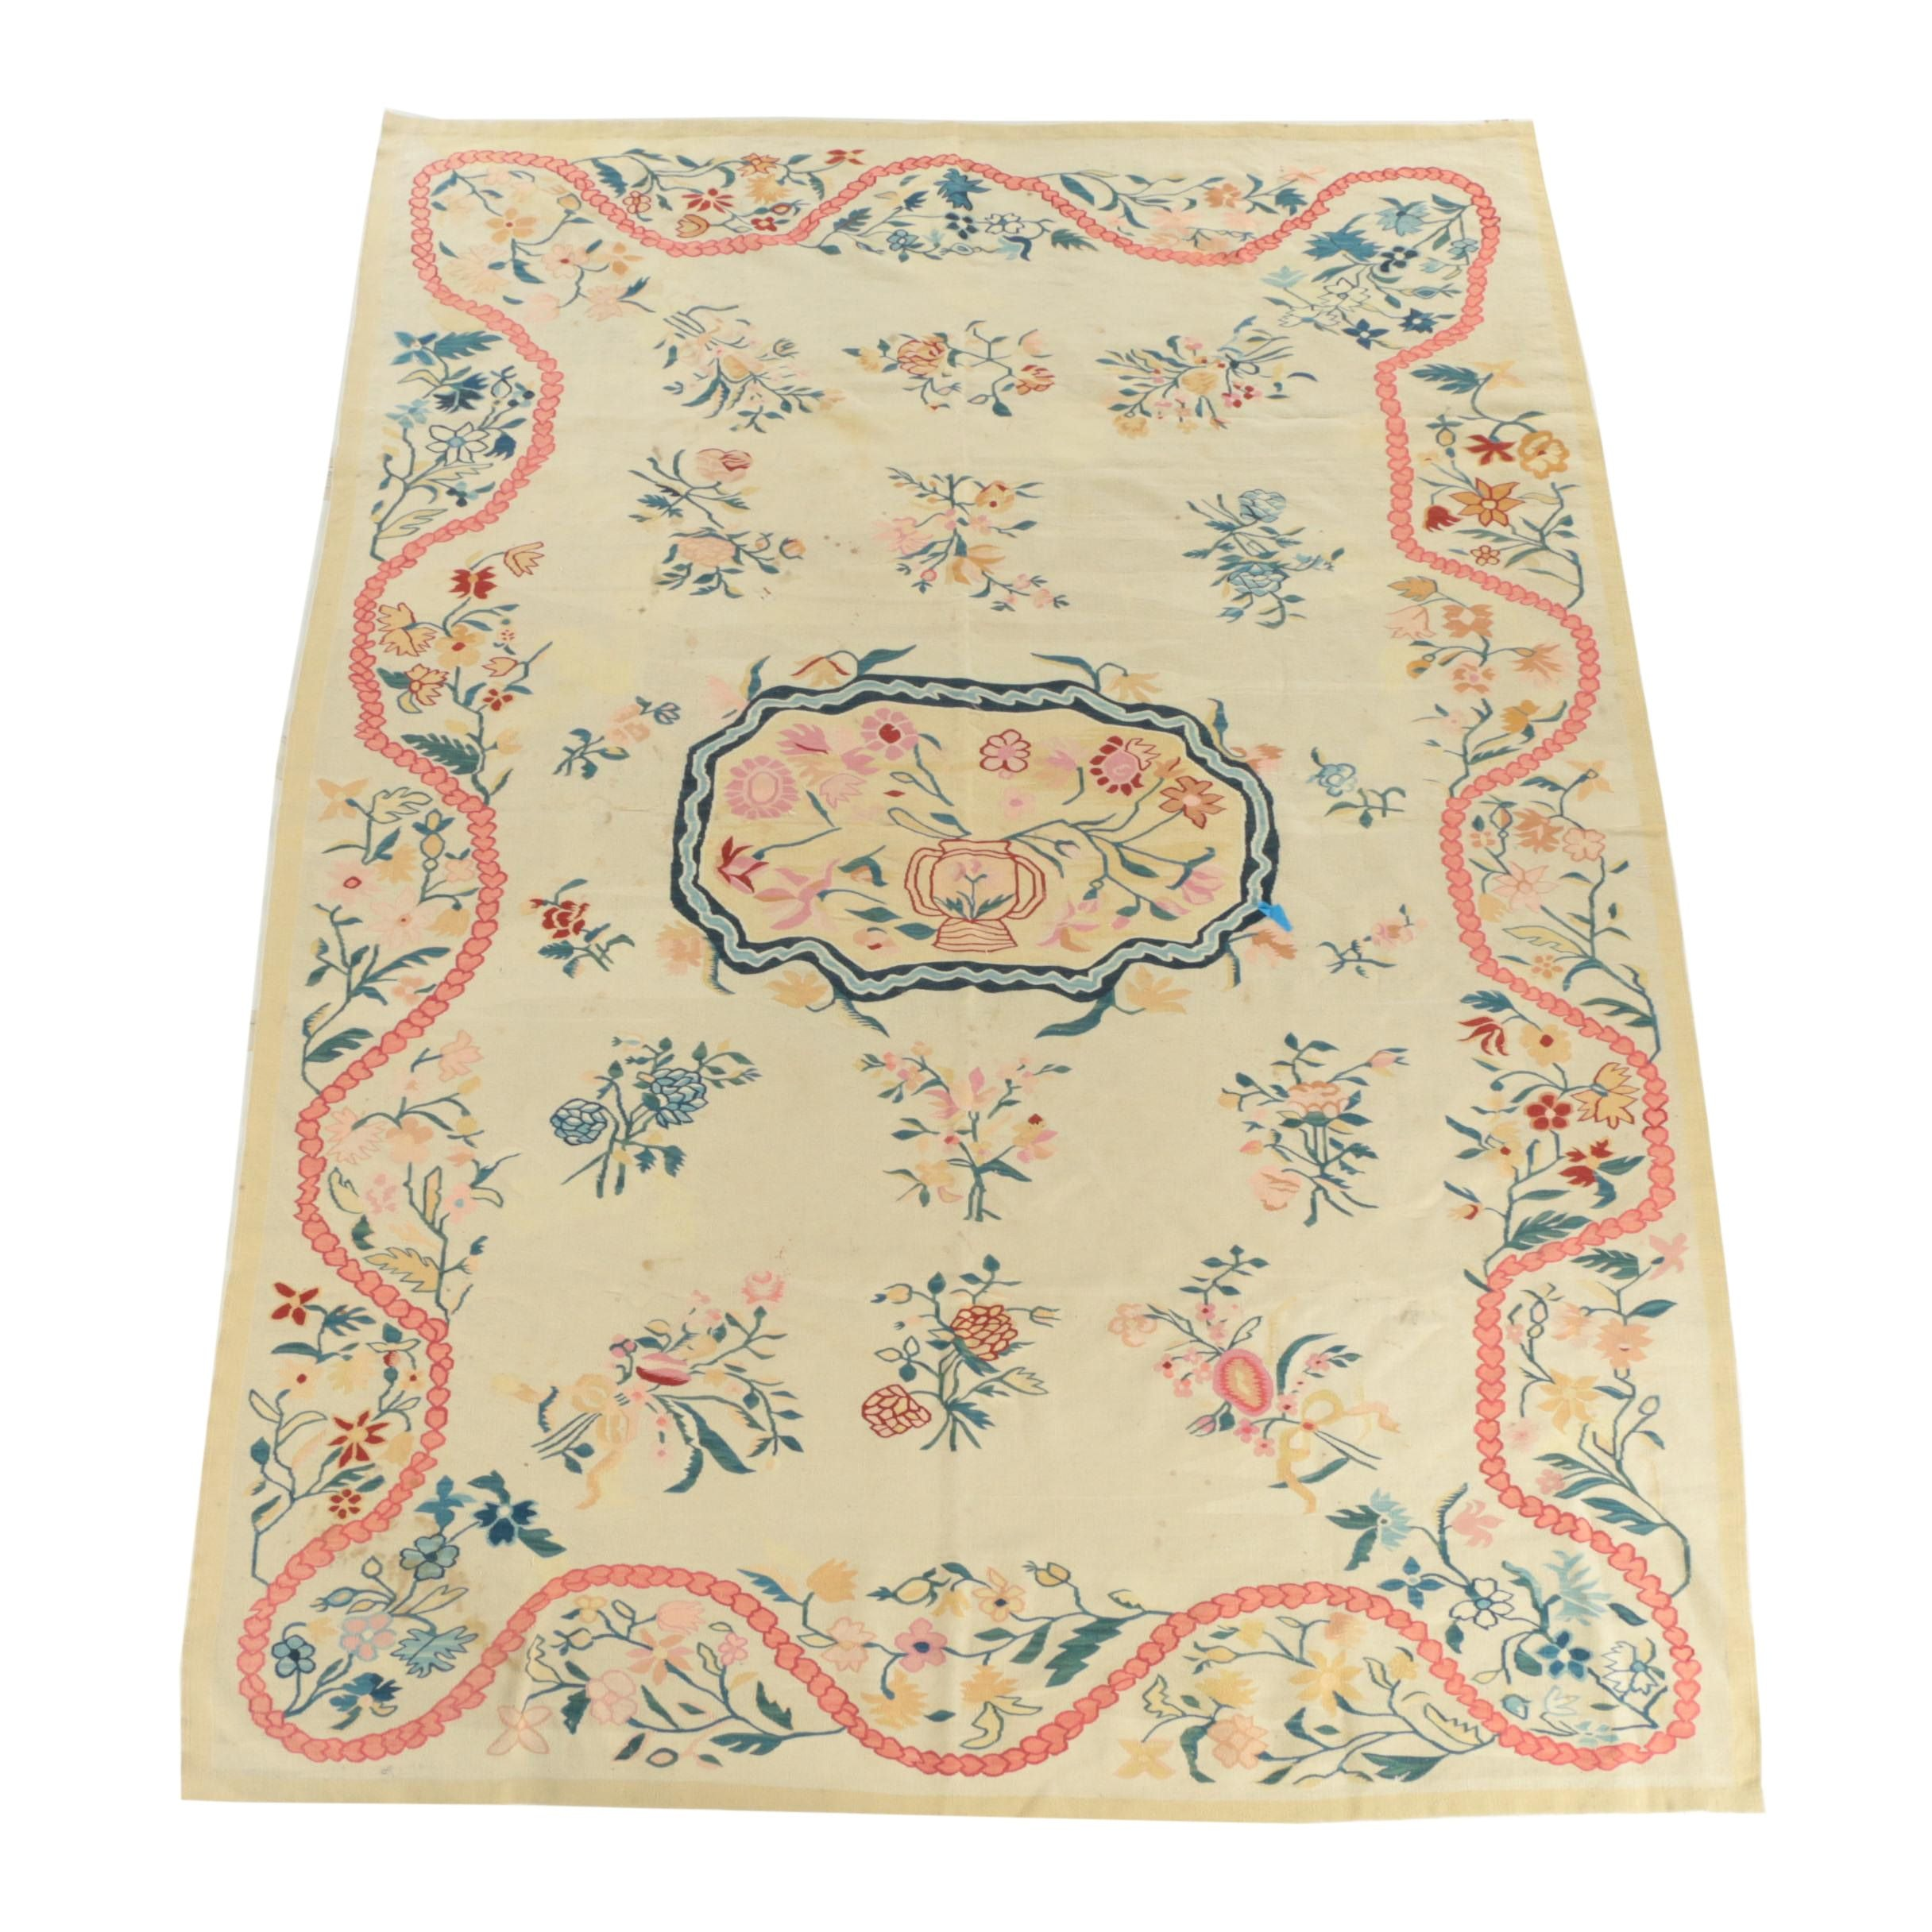 Handwoven Indian Dhurrie Floral Area Rug